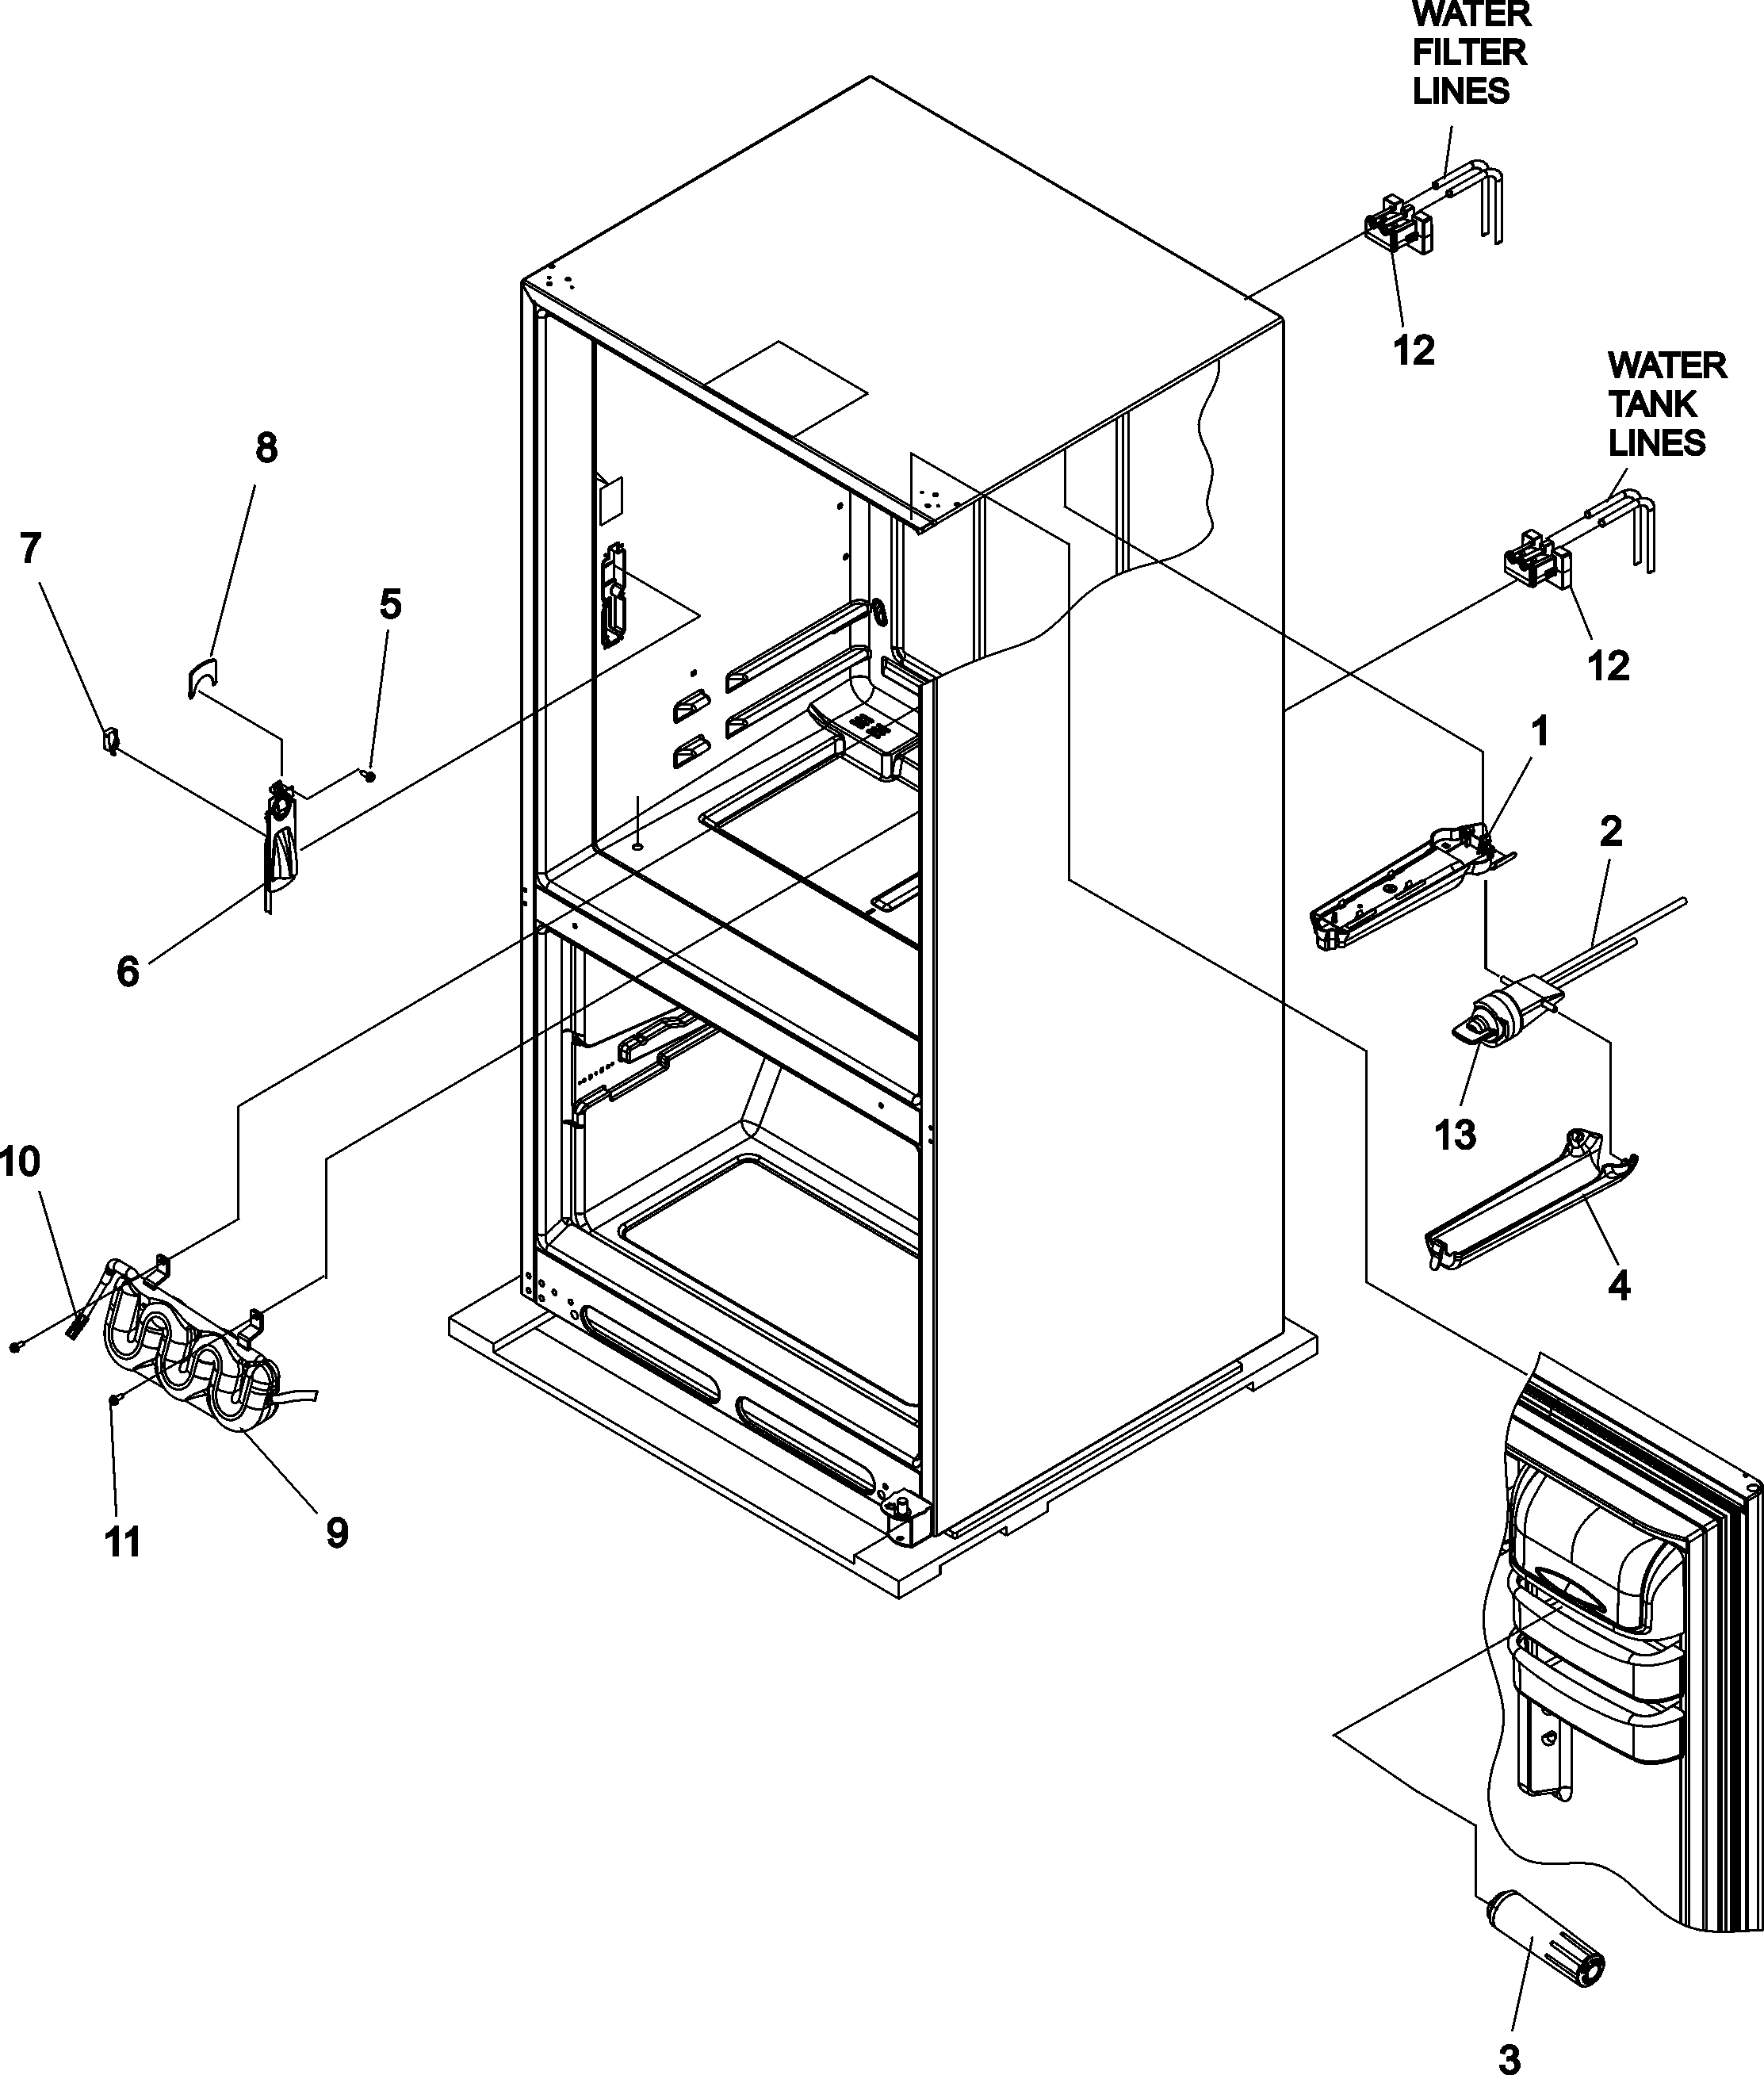 kenmore side by side refrigerator wiring diagram Download-Kenmore Elite Refrigerator Parts Diagram 19-o